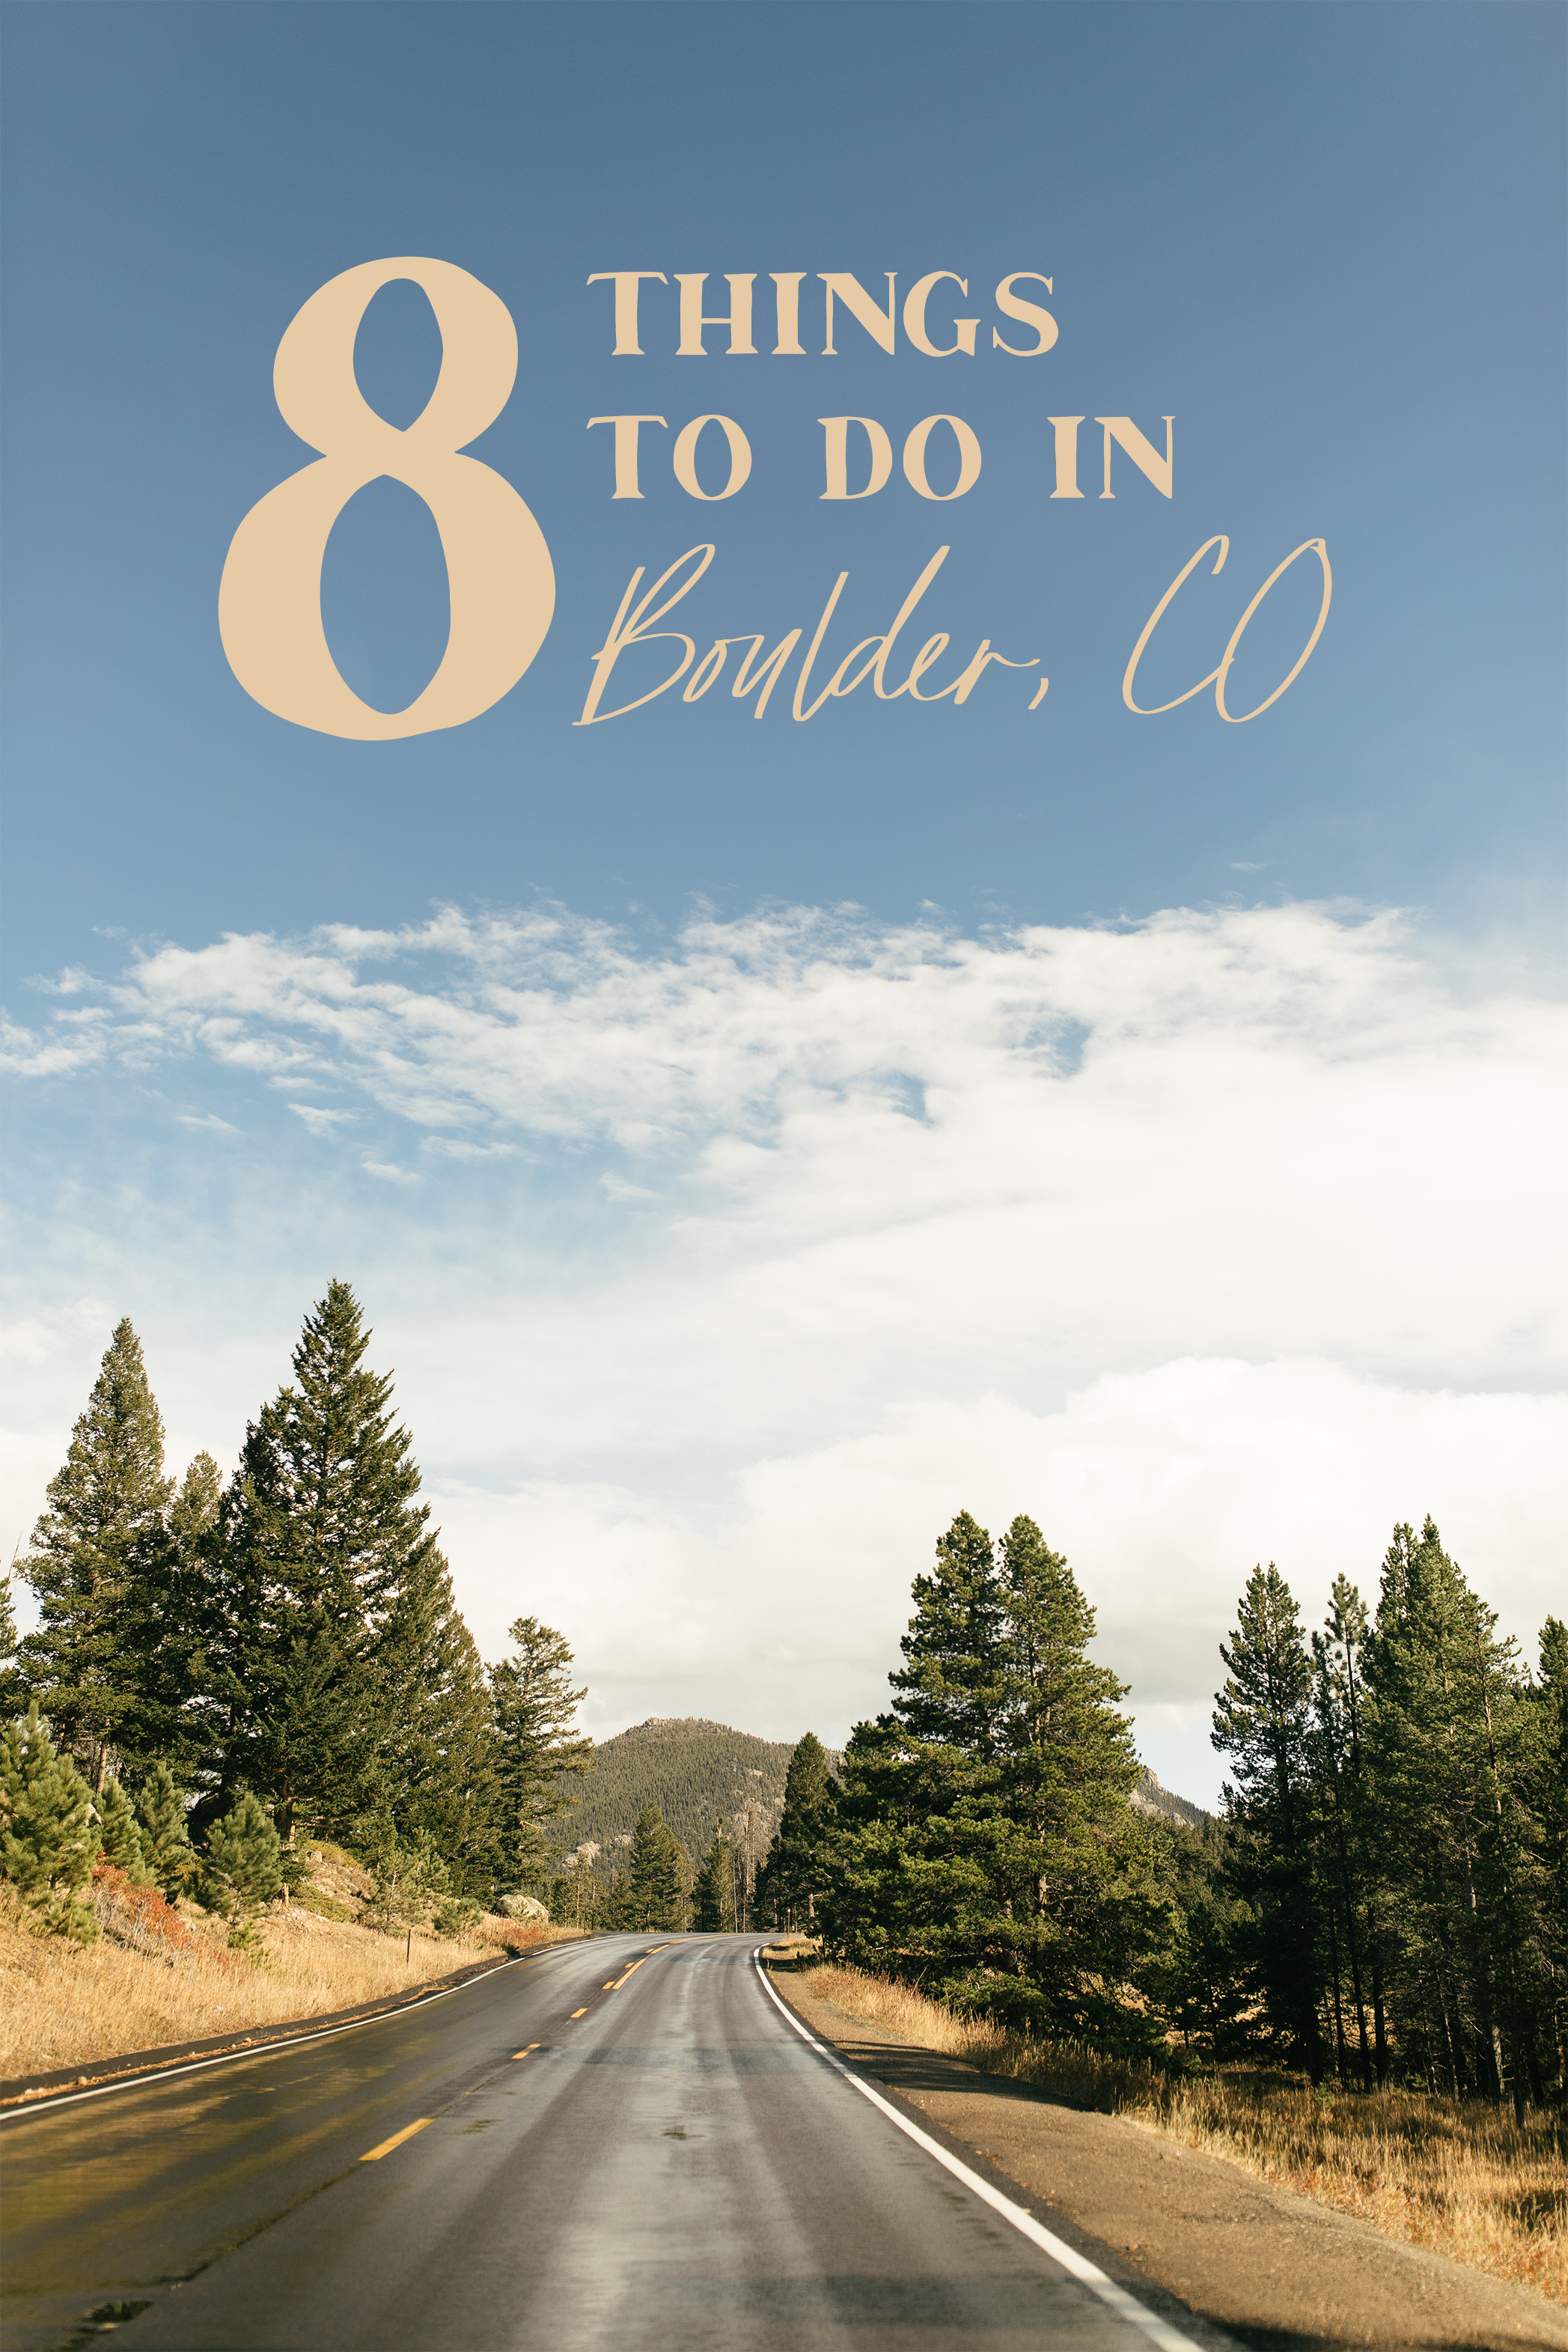 8 Things to do in Boulder, Colorado